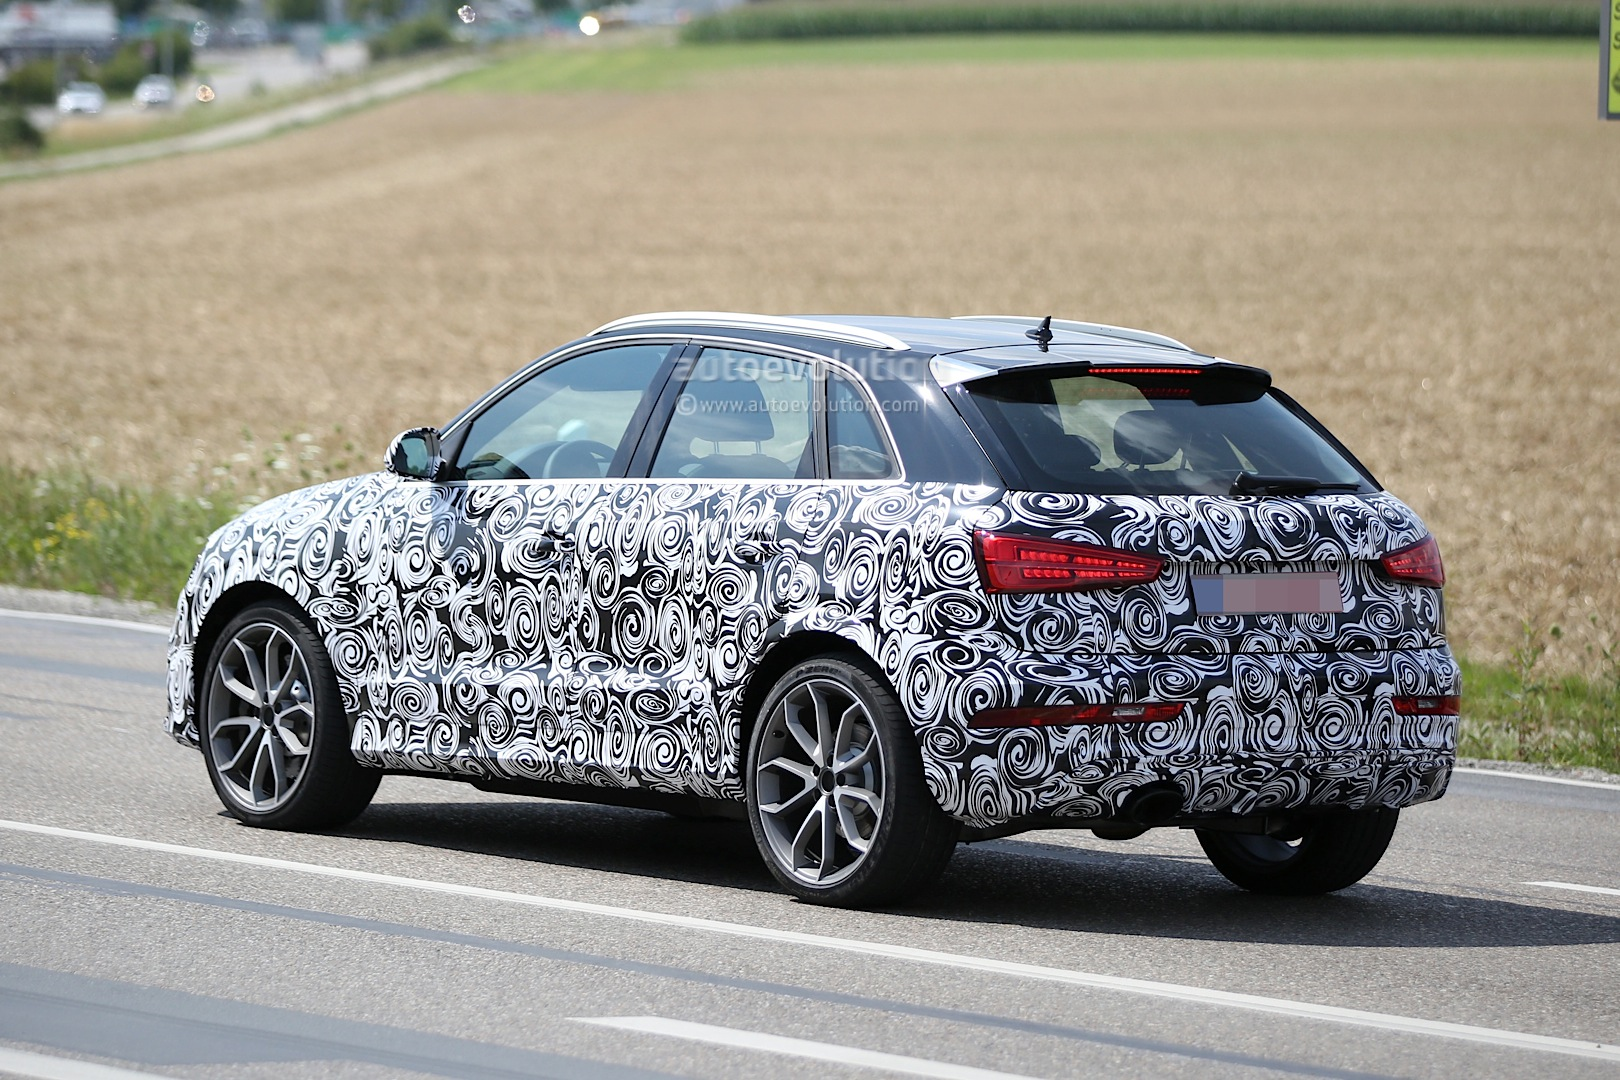 2016 audi rs q3 facelift joins q3 during testing session autoevolution. Black Bedroom Furniture Sets. Home Design Ideas